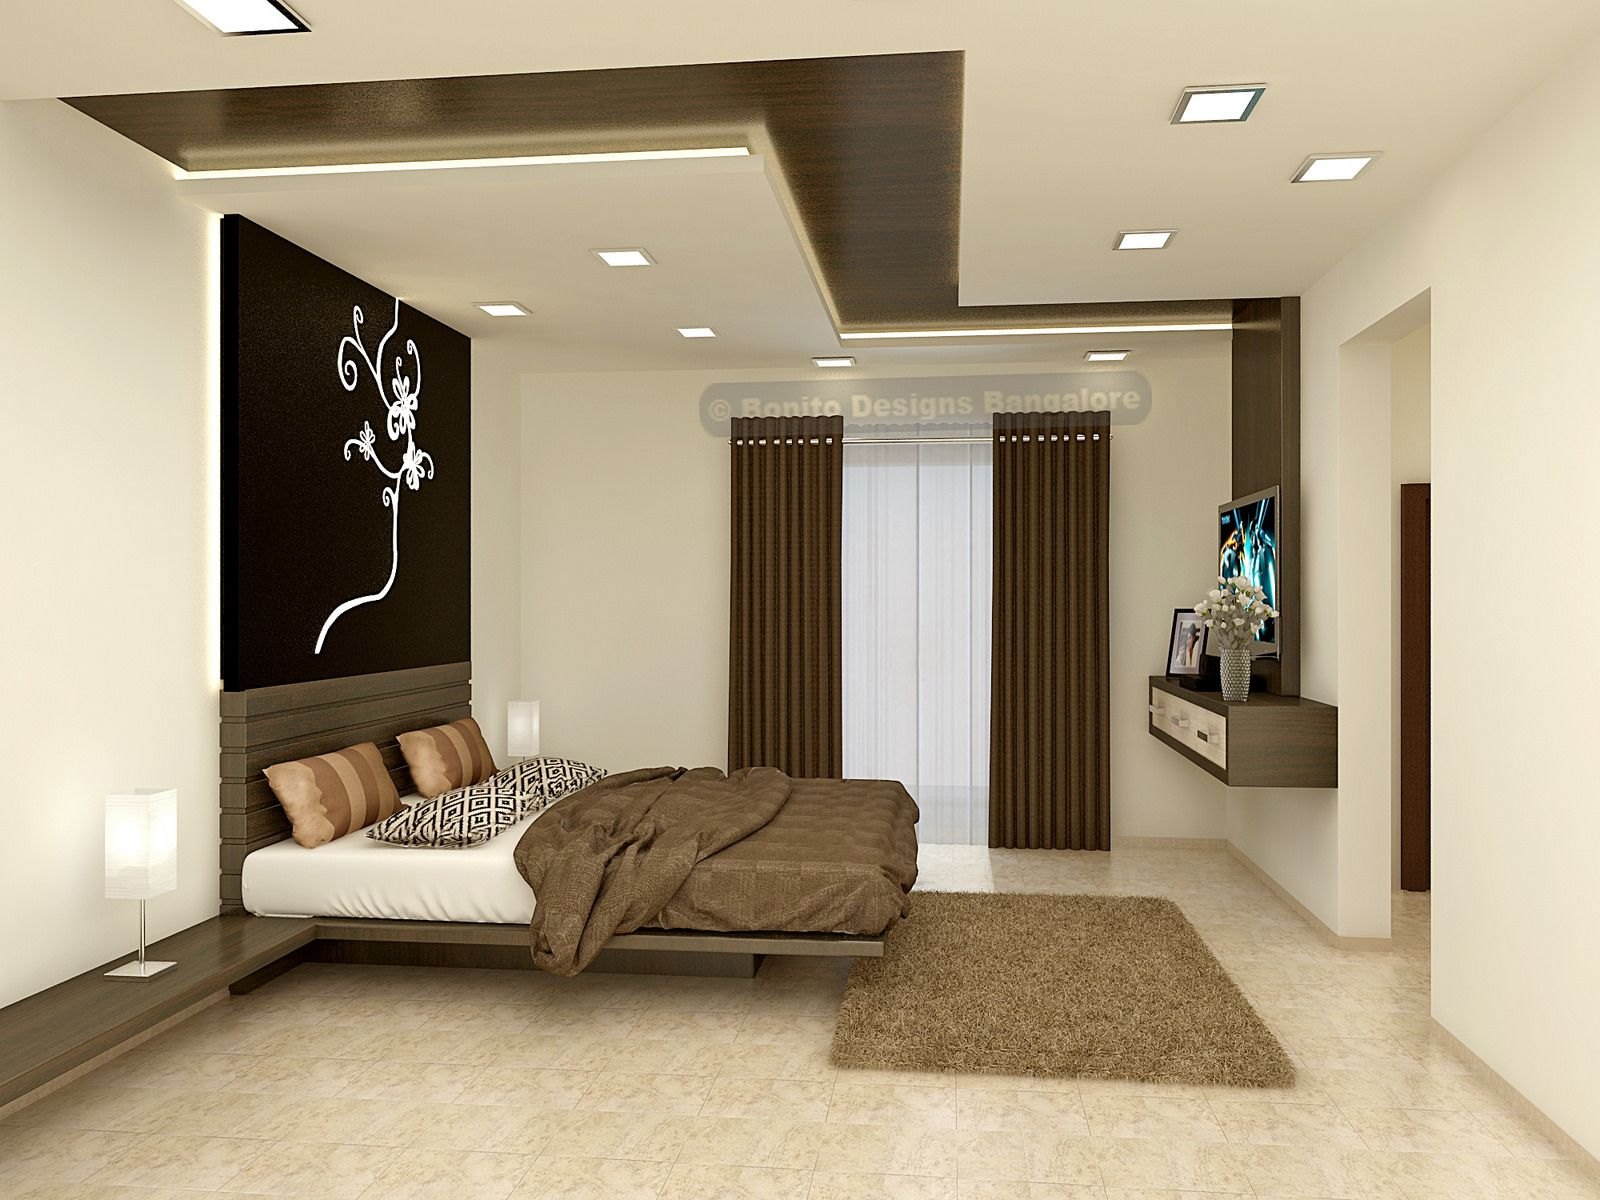 sandepmbr 8  Bedroom false ceiling design, Ceiling design living